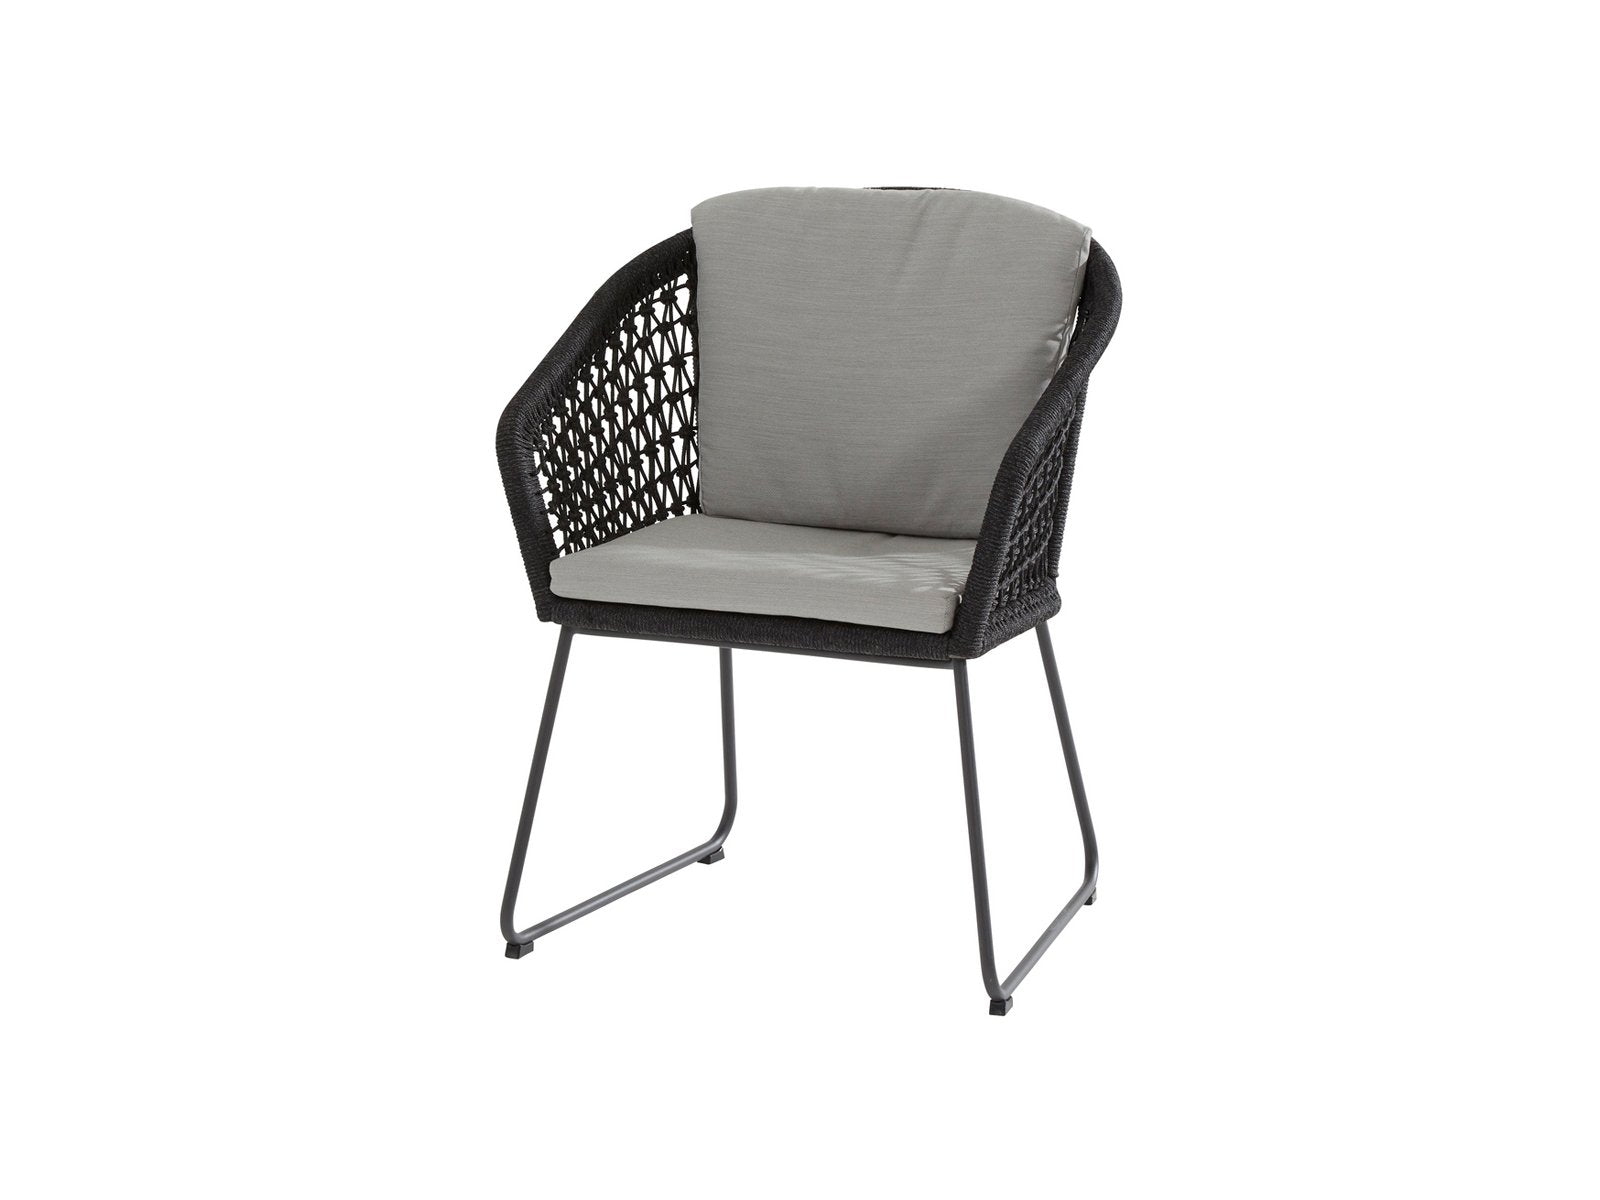 Mila-Dining-Chair-Stainless-Steel-Anthracite-Rope